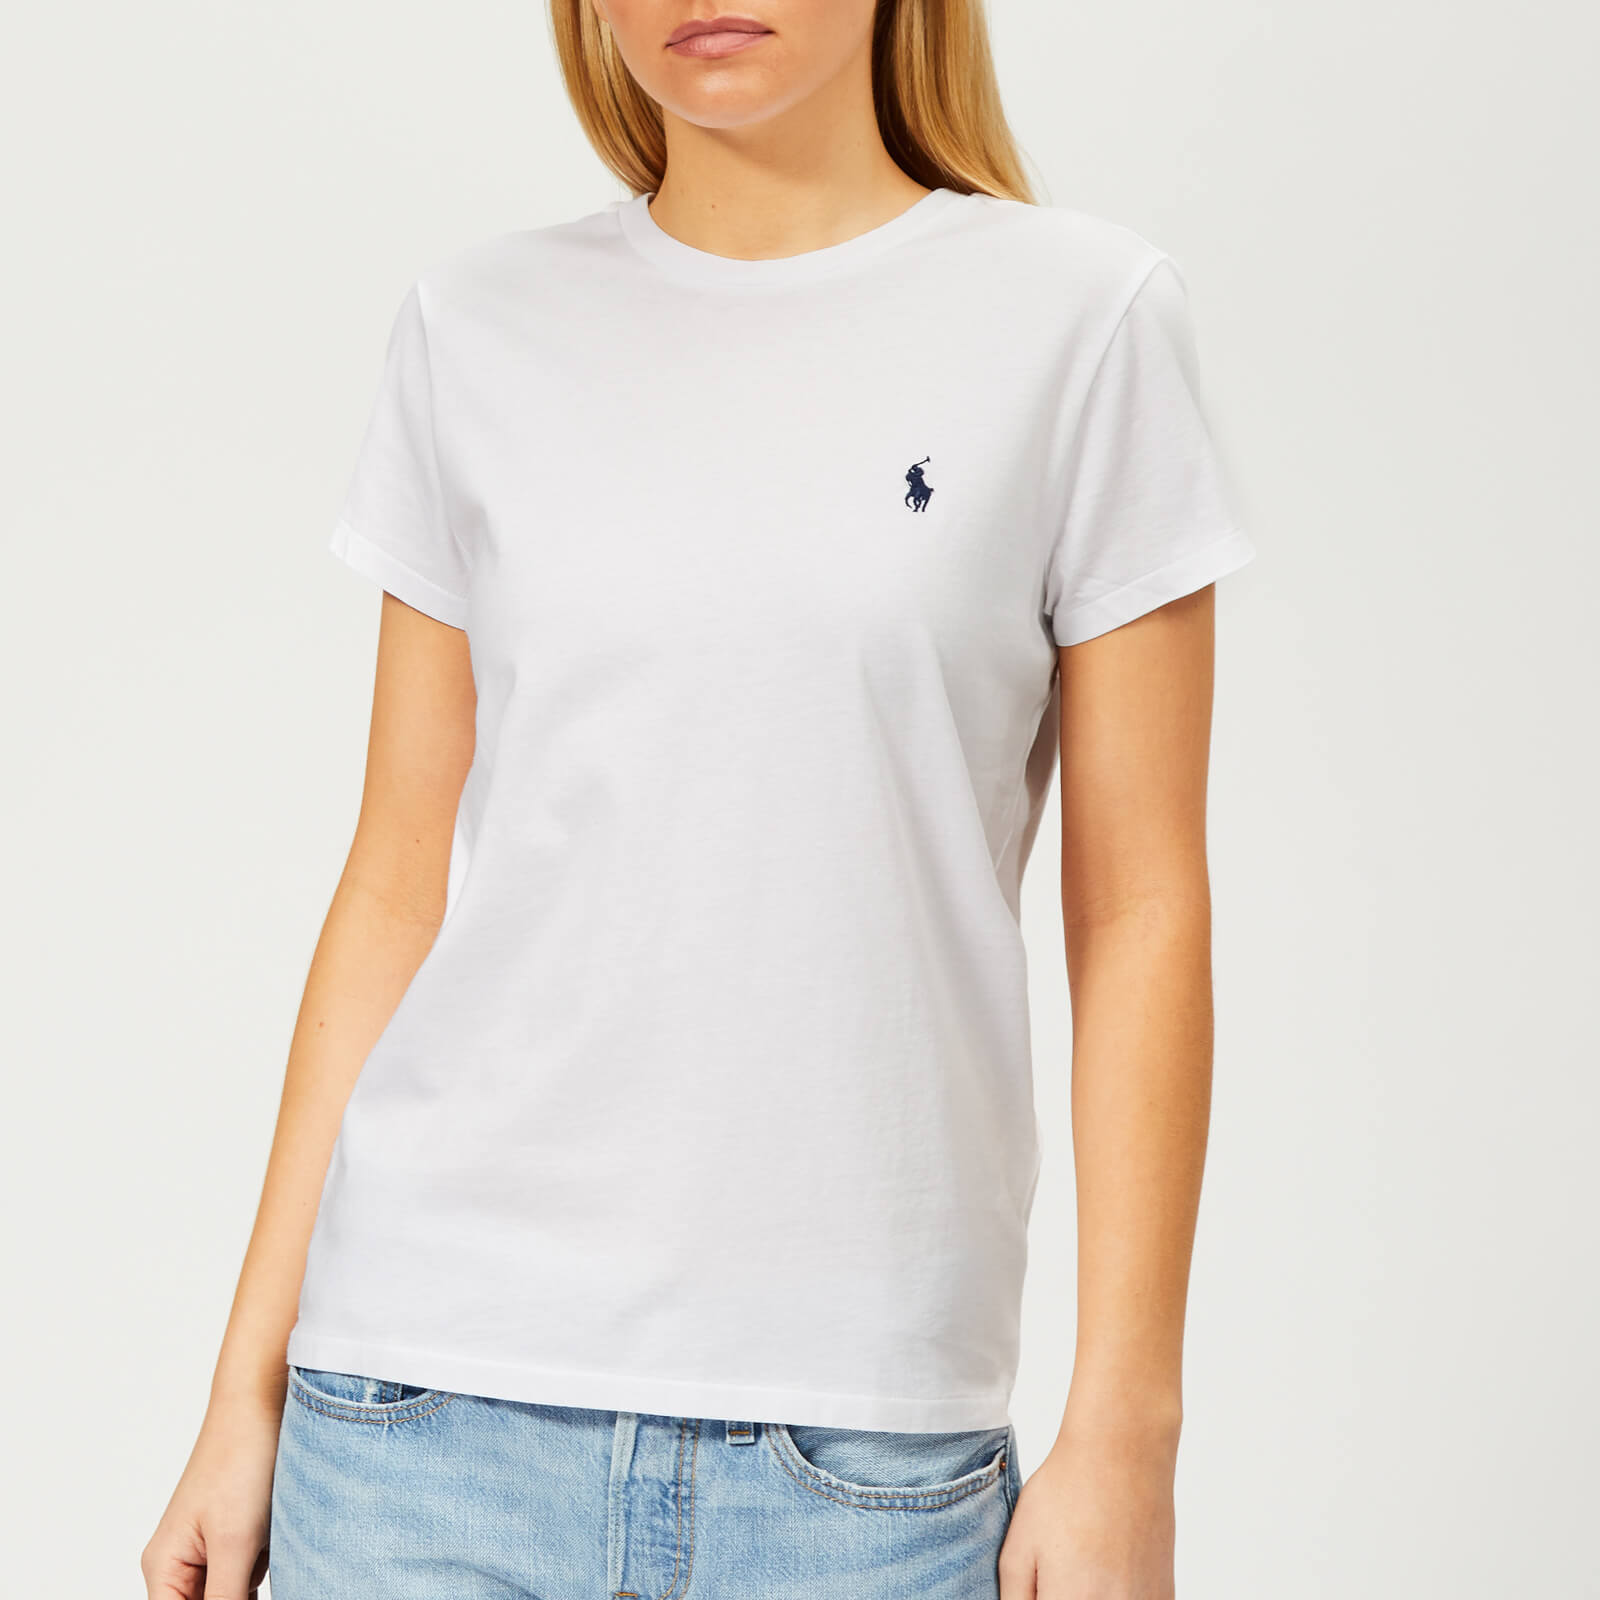 b1c245b01a Polo Ralph Lauren Women's Logo T-Shirt - White